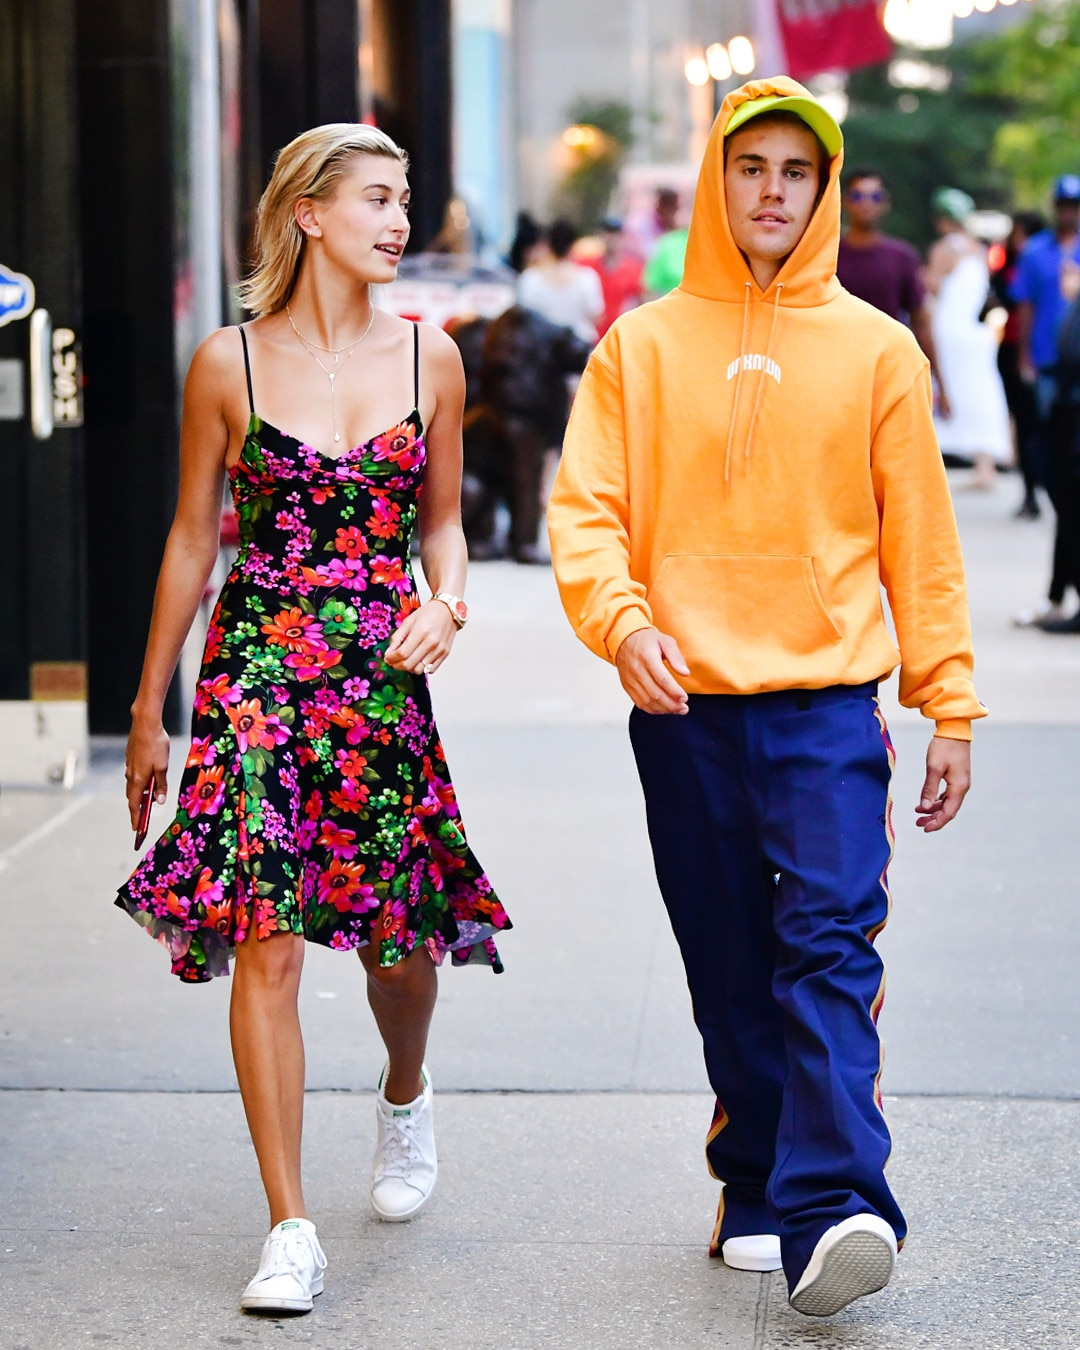 Justin Bieber explains why he was crying with fiancee Hailey Baldwin